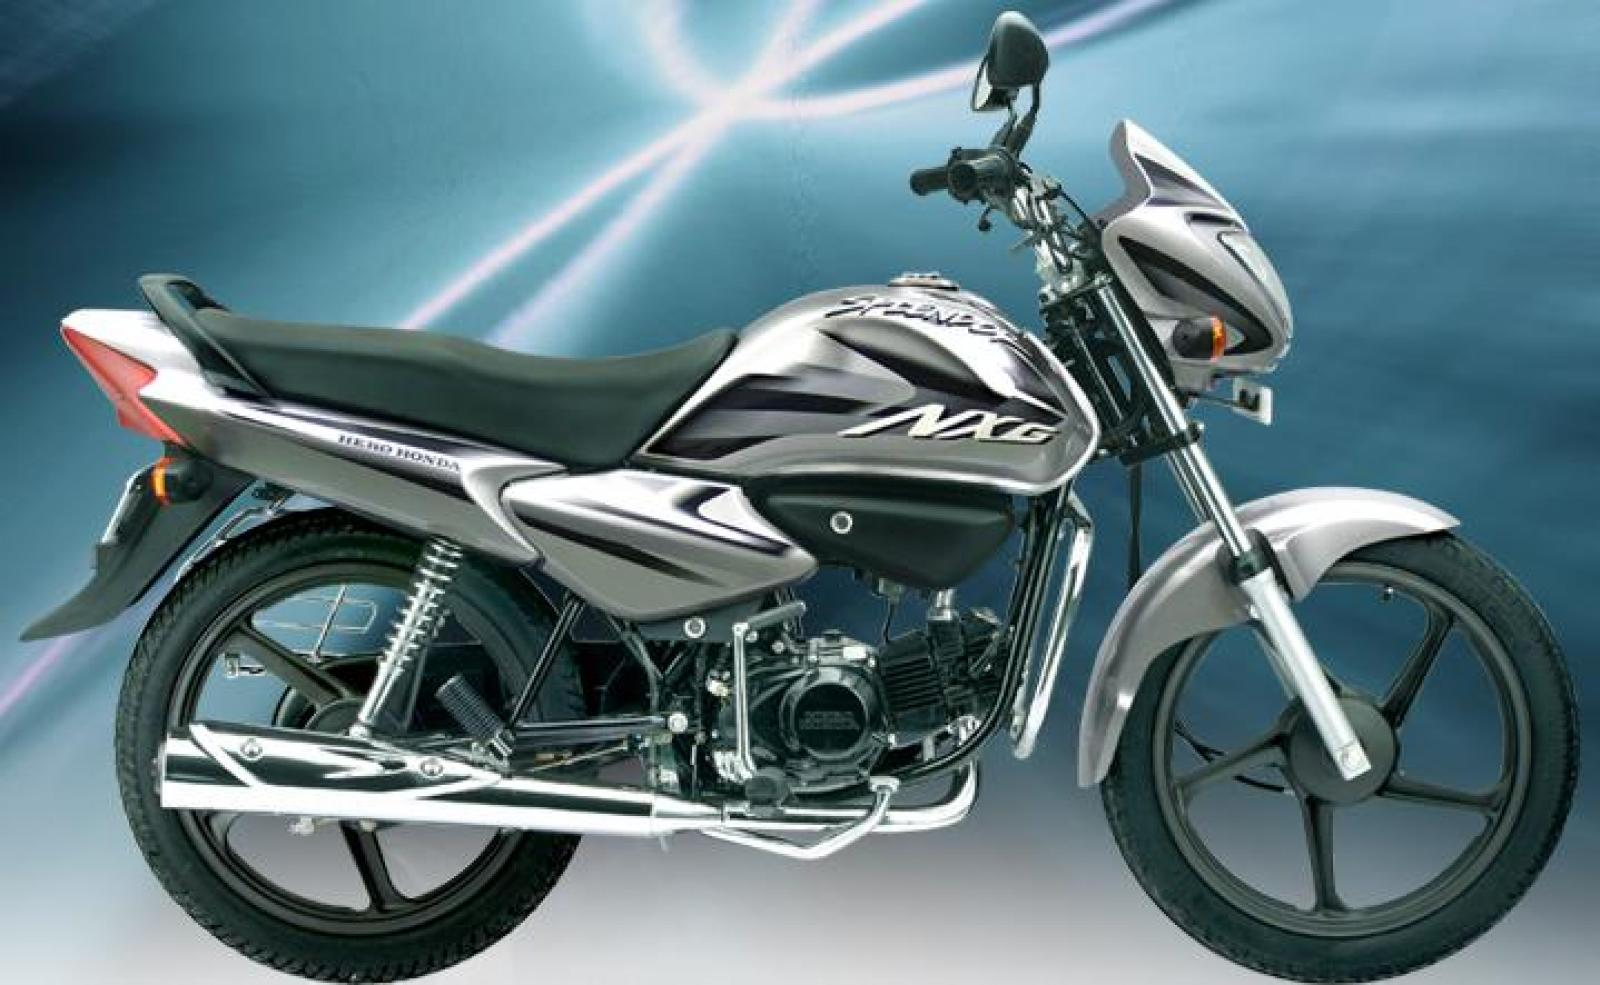 hero honda is it honda that Hero honda bikes india reviews - guide to buying a hero honda, india bikes price in india all models and variants by hero honda insurance quotes hero honda.